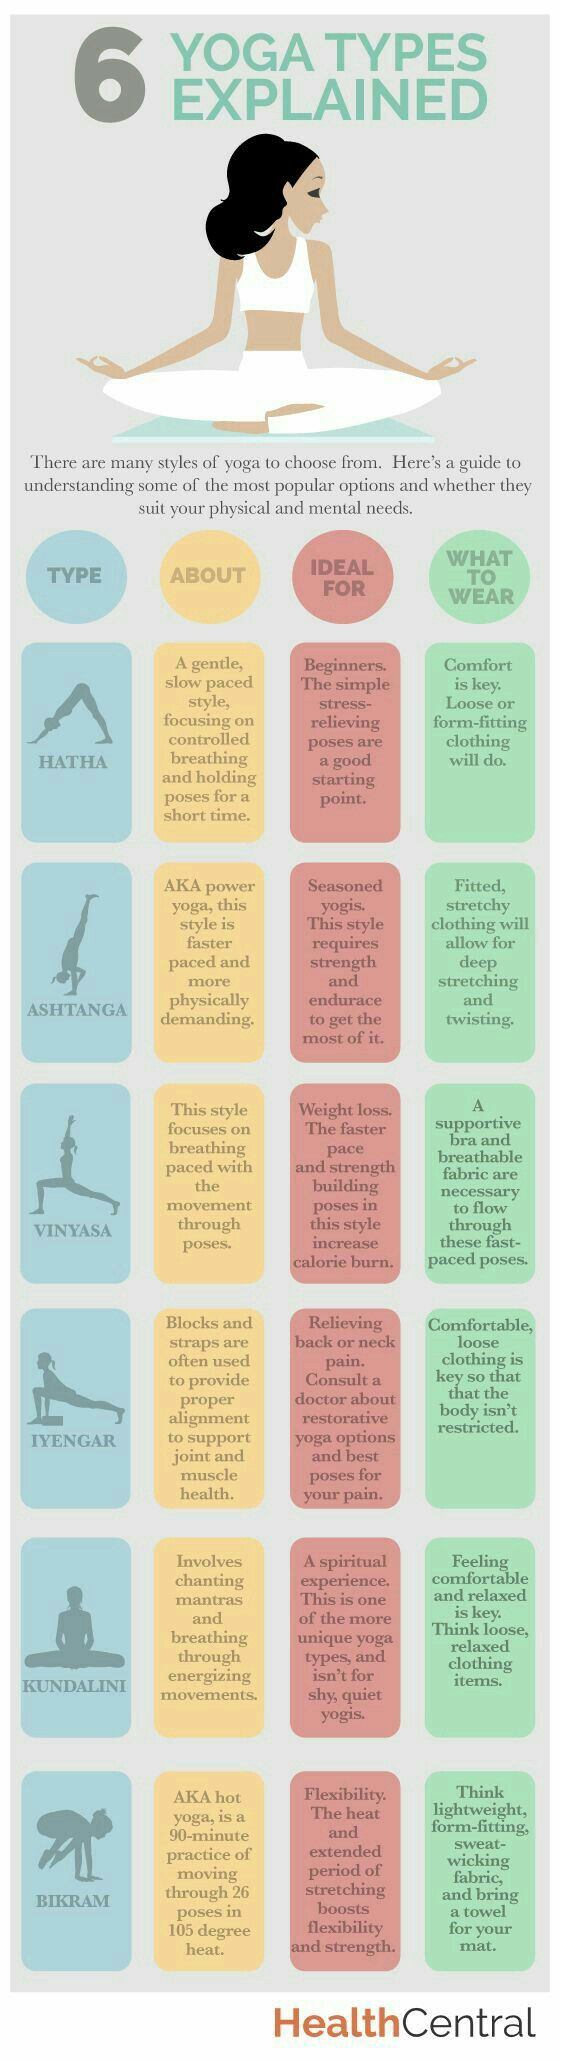 6 yoga types - this guide will help you choose which yoga style is perfect for you and your needs • • #strength #core #balance #flexibility